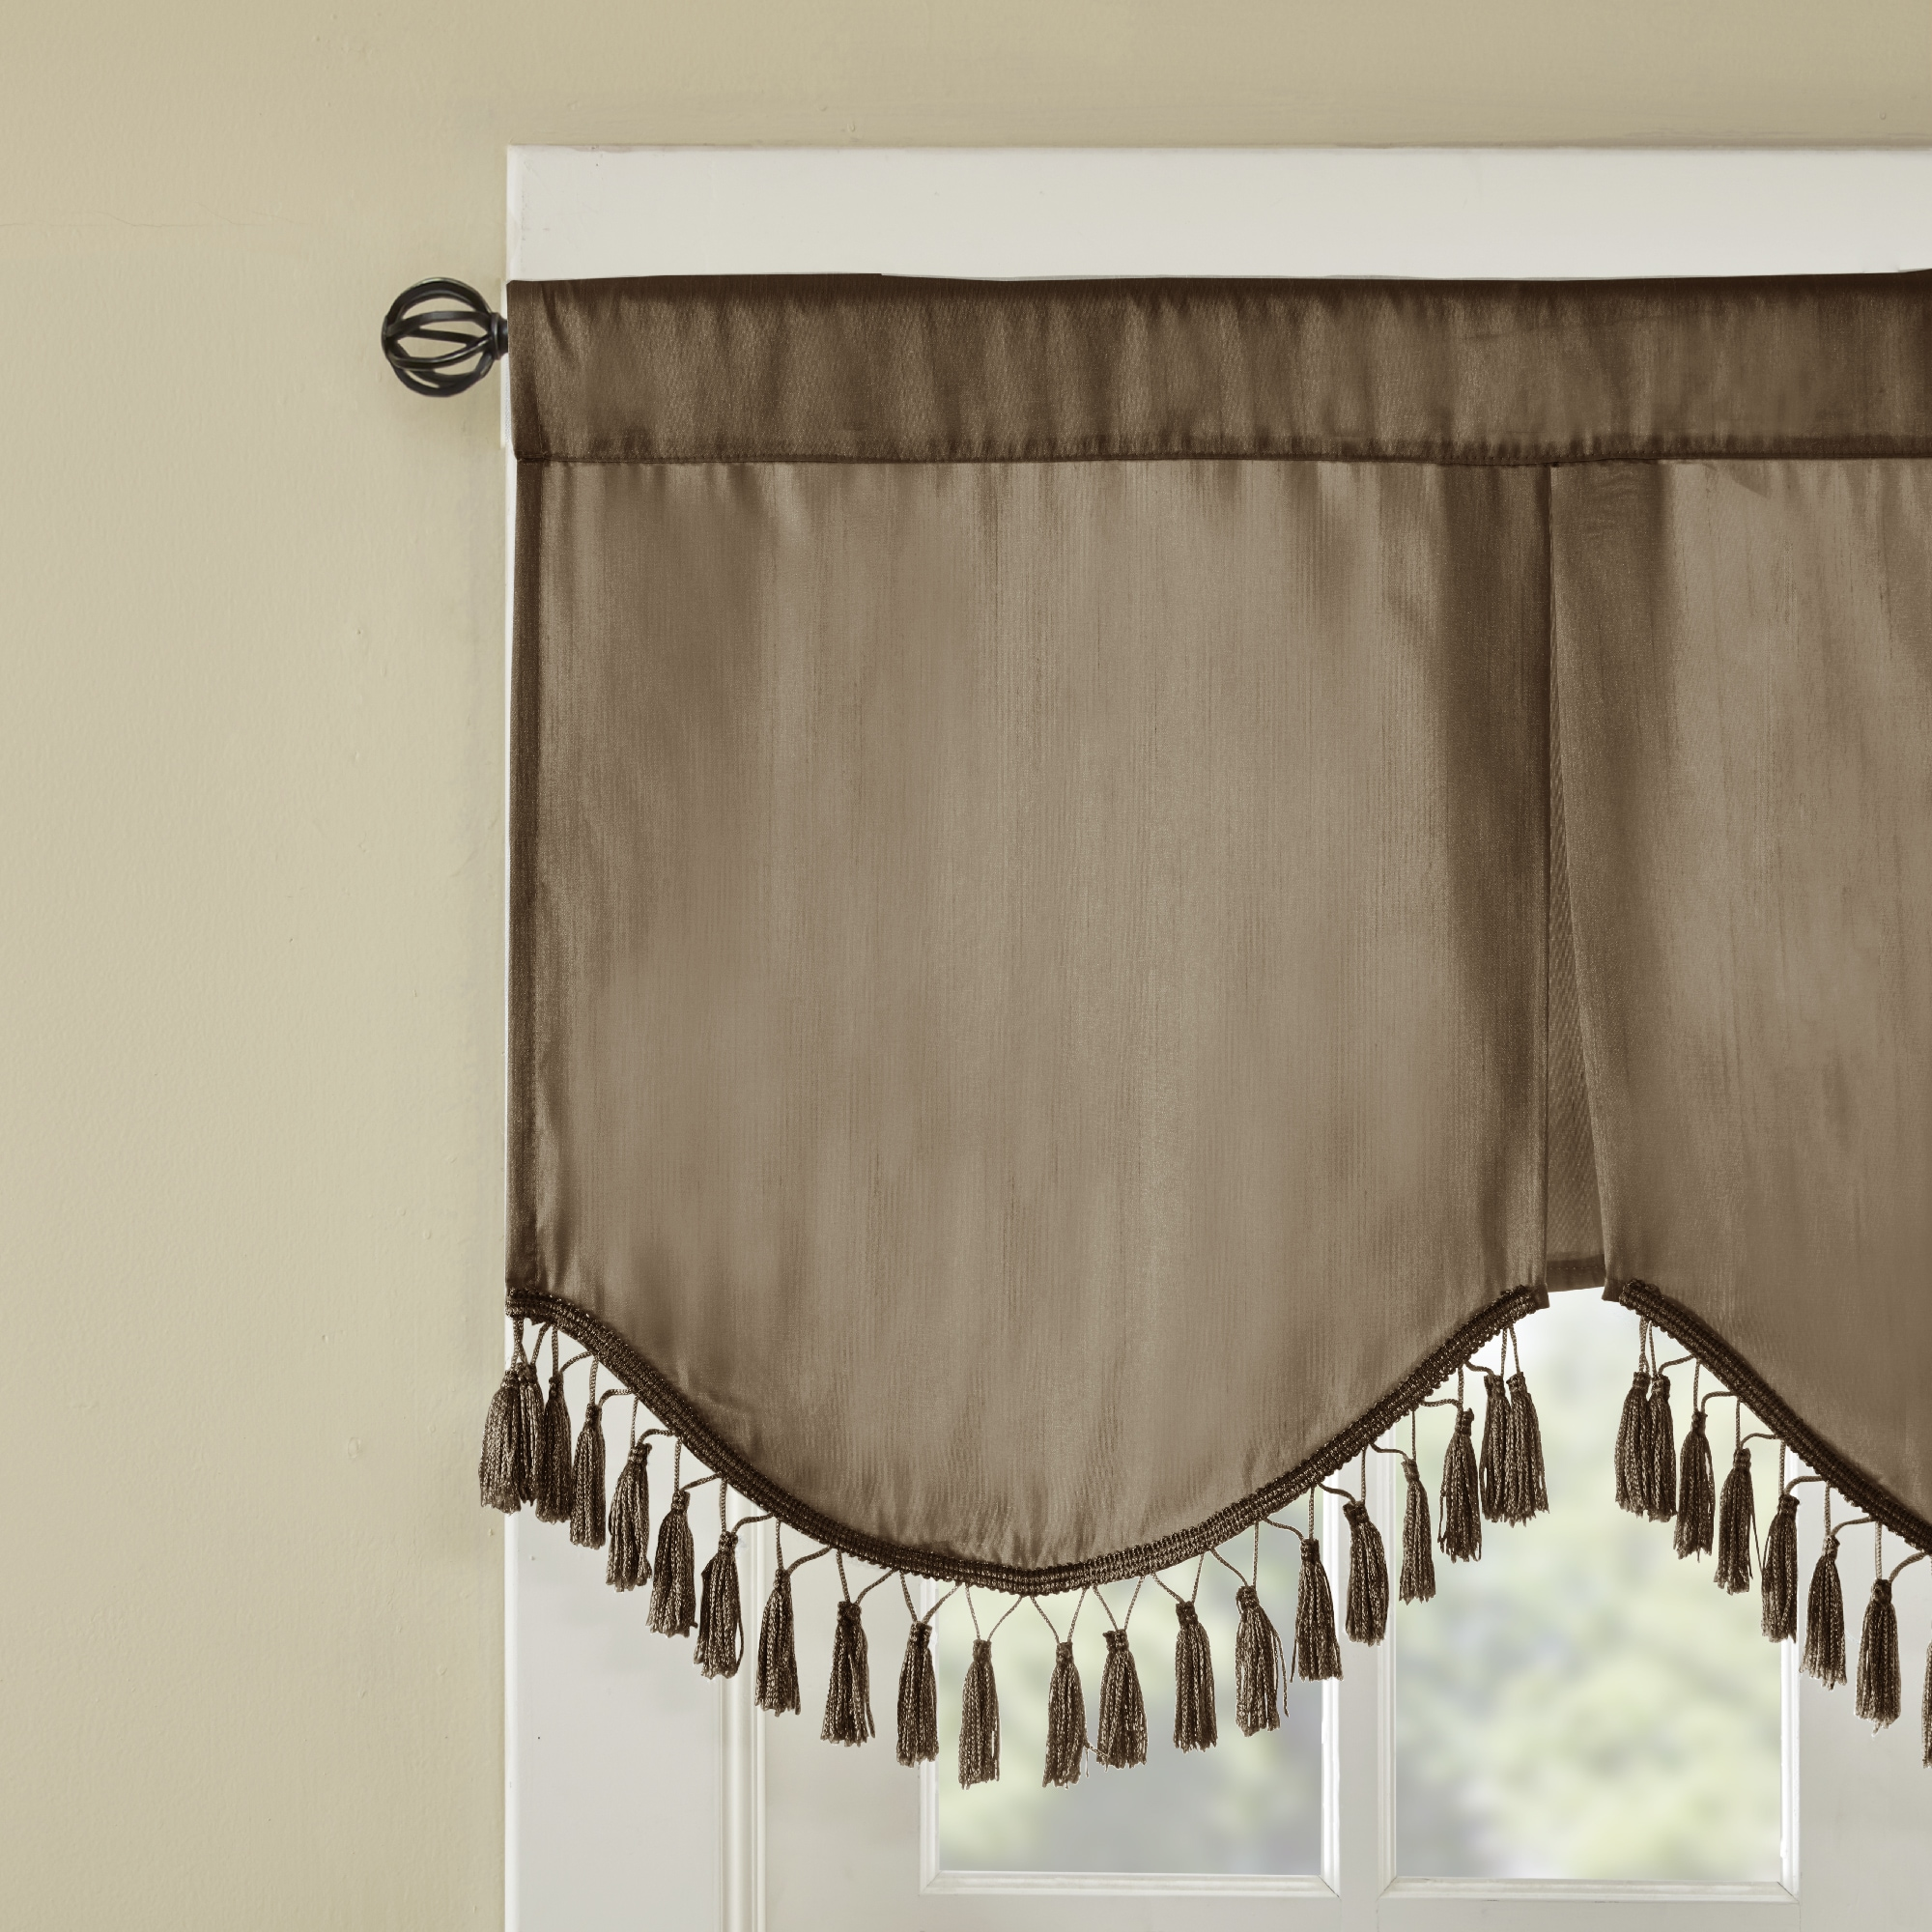 waterfall treatments color pin lined x valances classics and home r window valance